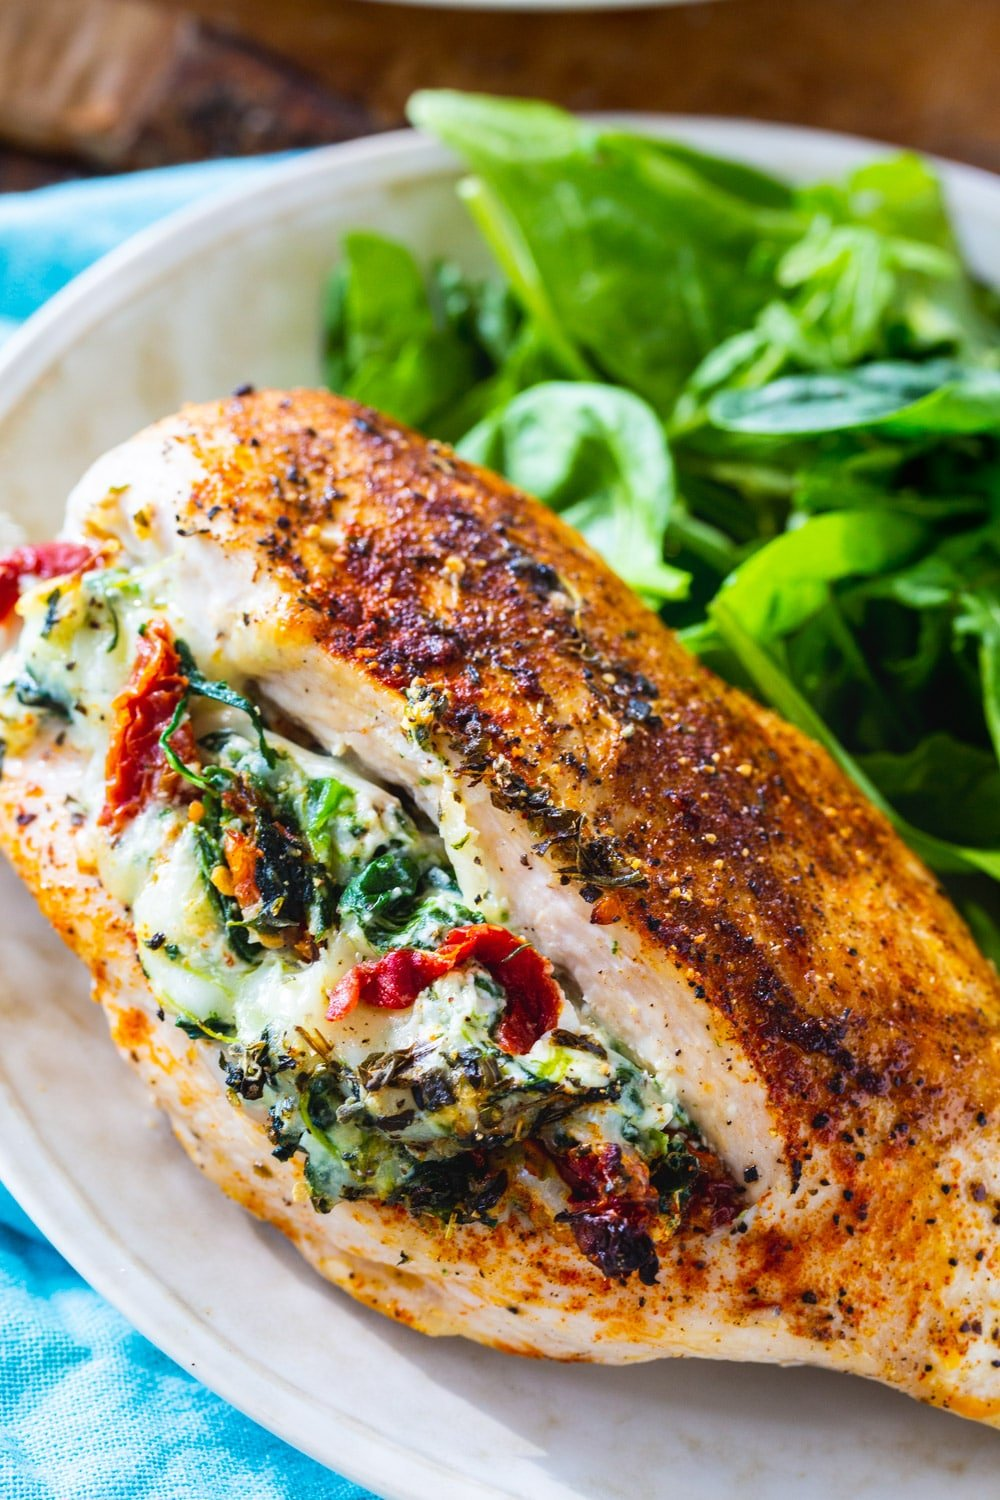 Piece of Tuscan Stuffed Chicken on plate with green salad.